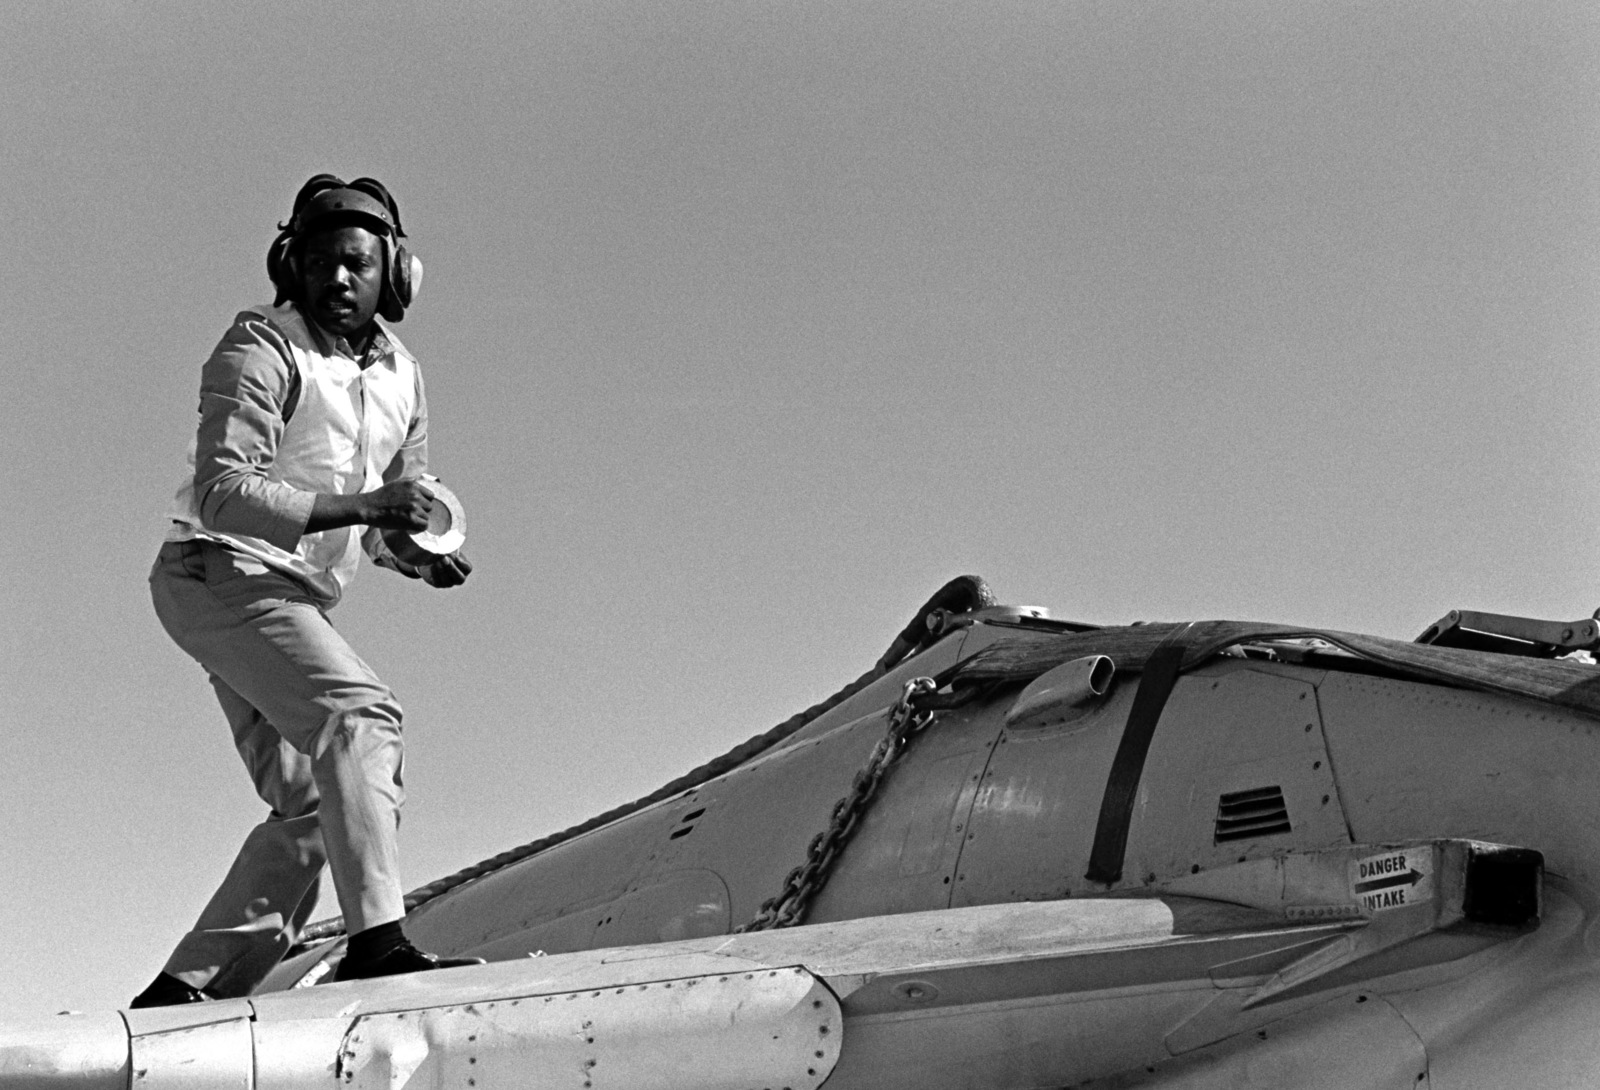 A chief petty officer stands on the wing of a damaged Attack Squadron 52 (VA-52) A-6E Intruder aircraft to tape down sections of a lifting harness. A helicopter will carry the aircraft to the Naval Air Rework Facility, Alameda, California, for repairs. The Intruder was damaged when a hydraulic failure forced it to land with its landing gear retracted